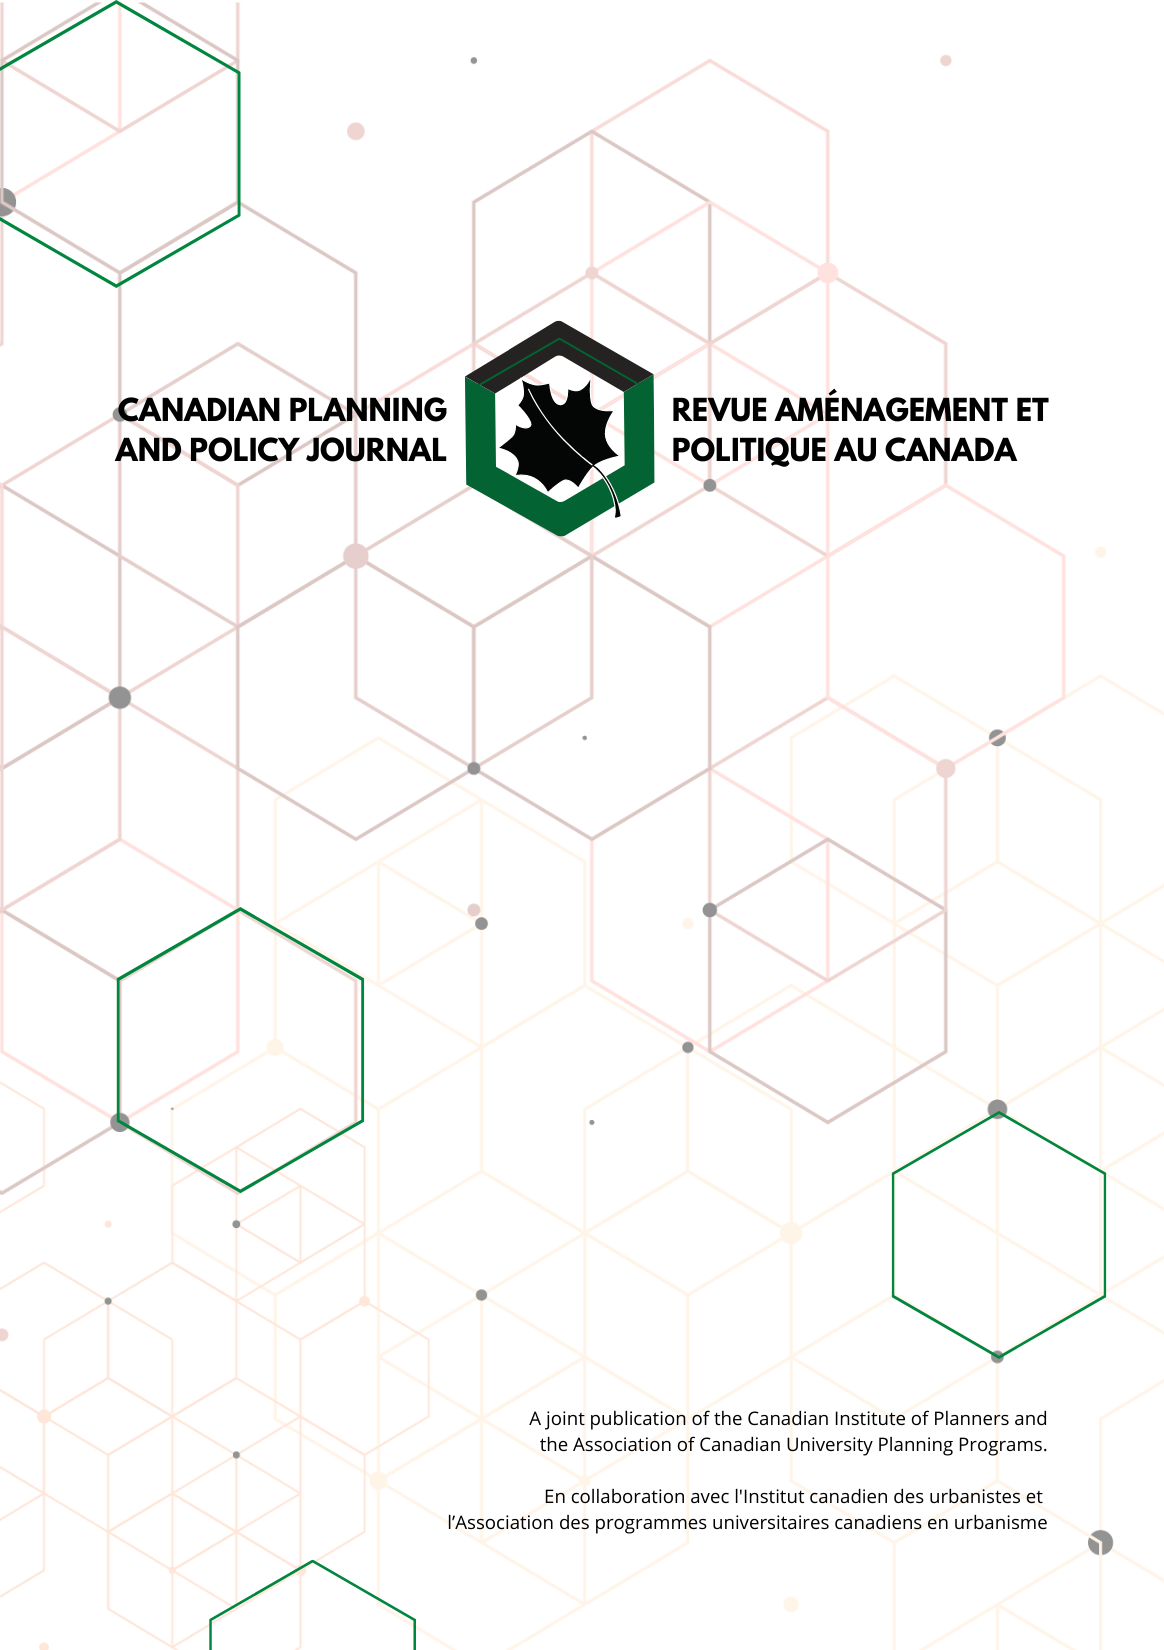 Canadian Planning and Policy Journal